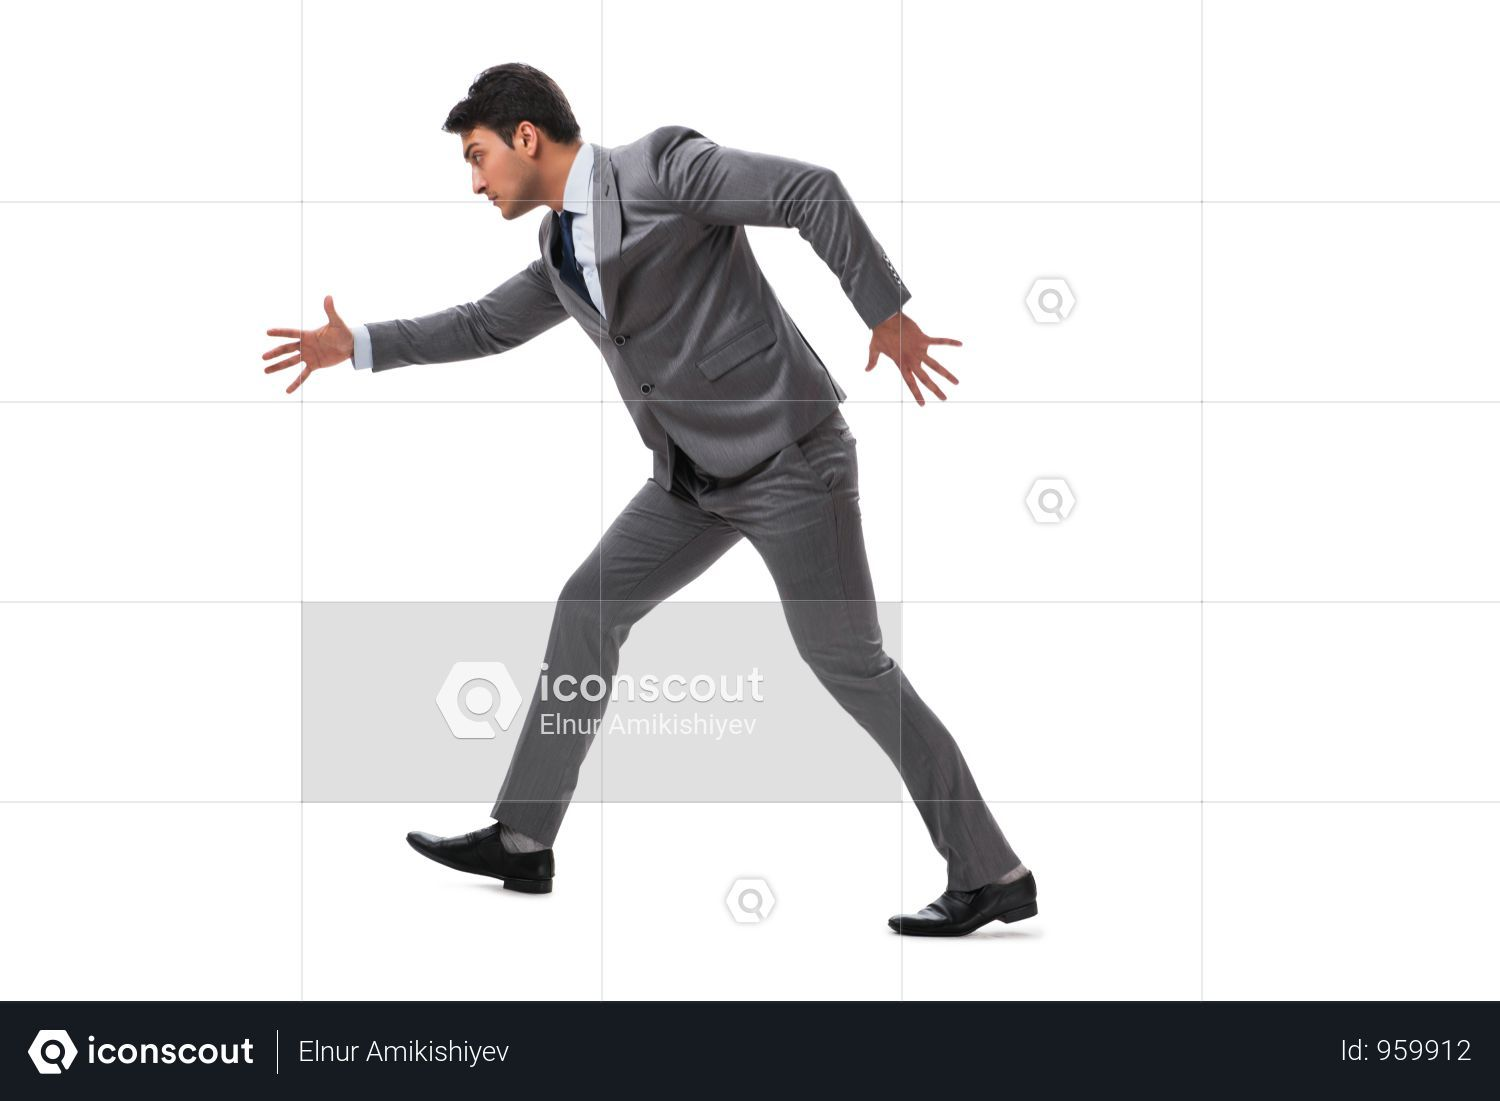 Premium Young Businessman Running Forward Isolated On White Photo Download In Png Jpg Format Business Man Business Photos Photo